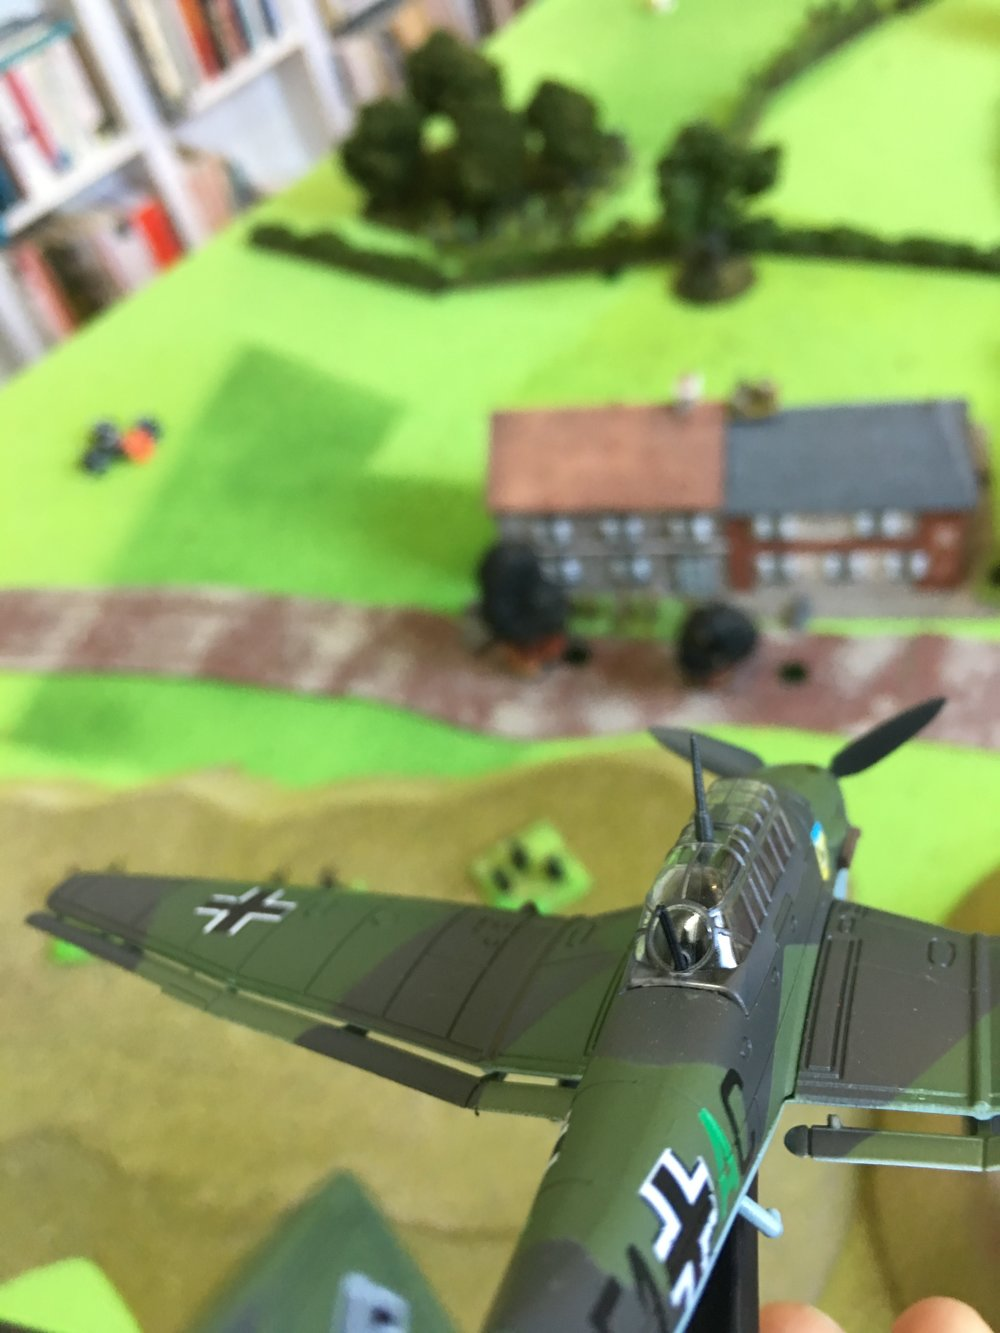 A Stuka divebomber attacking the British position